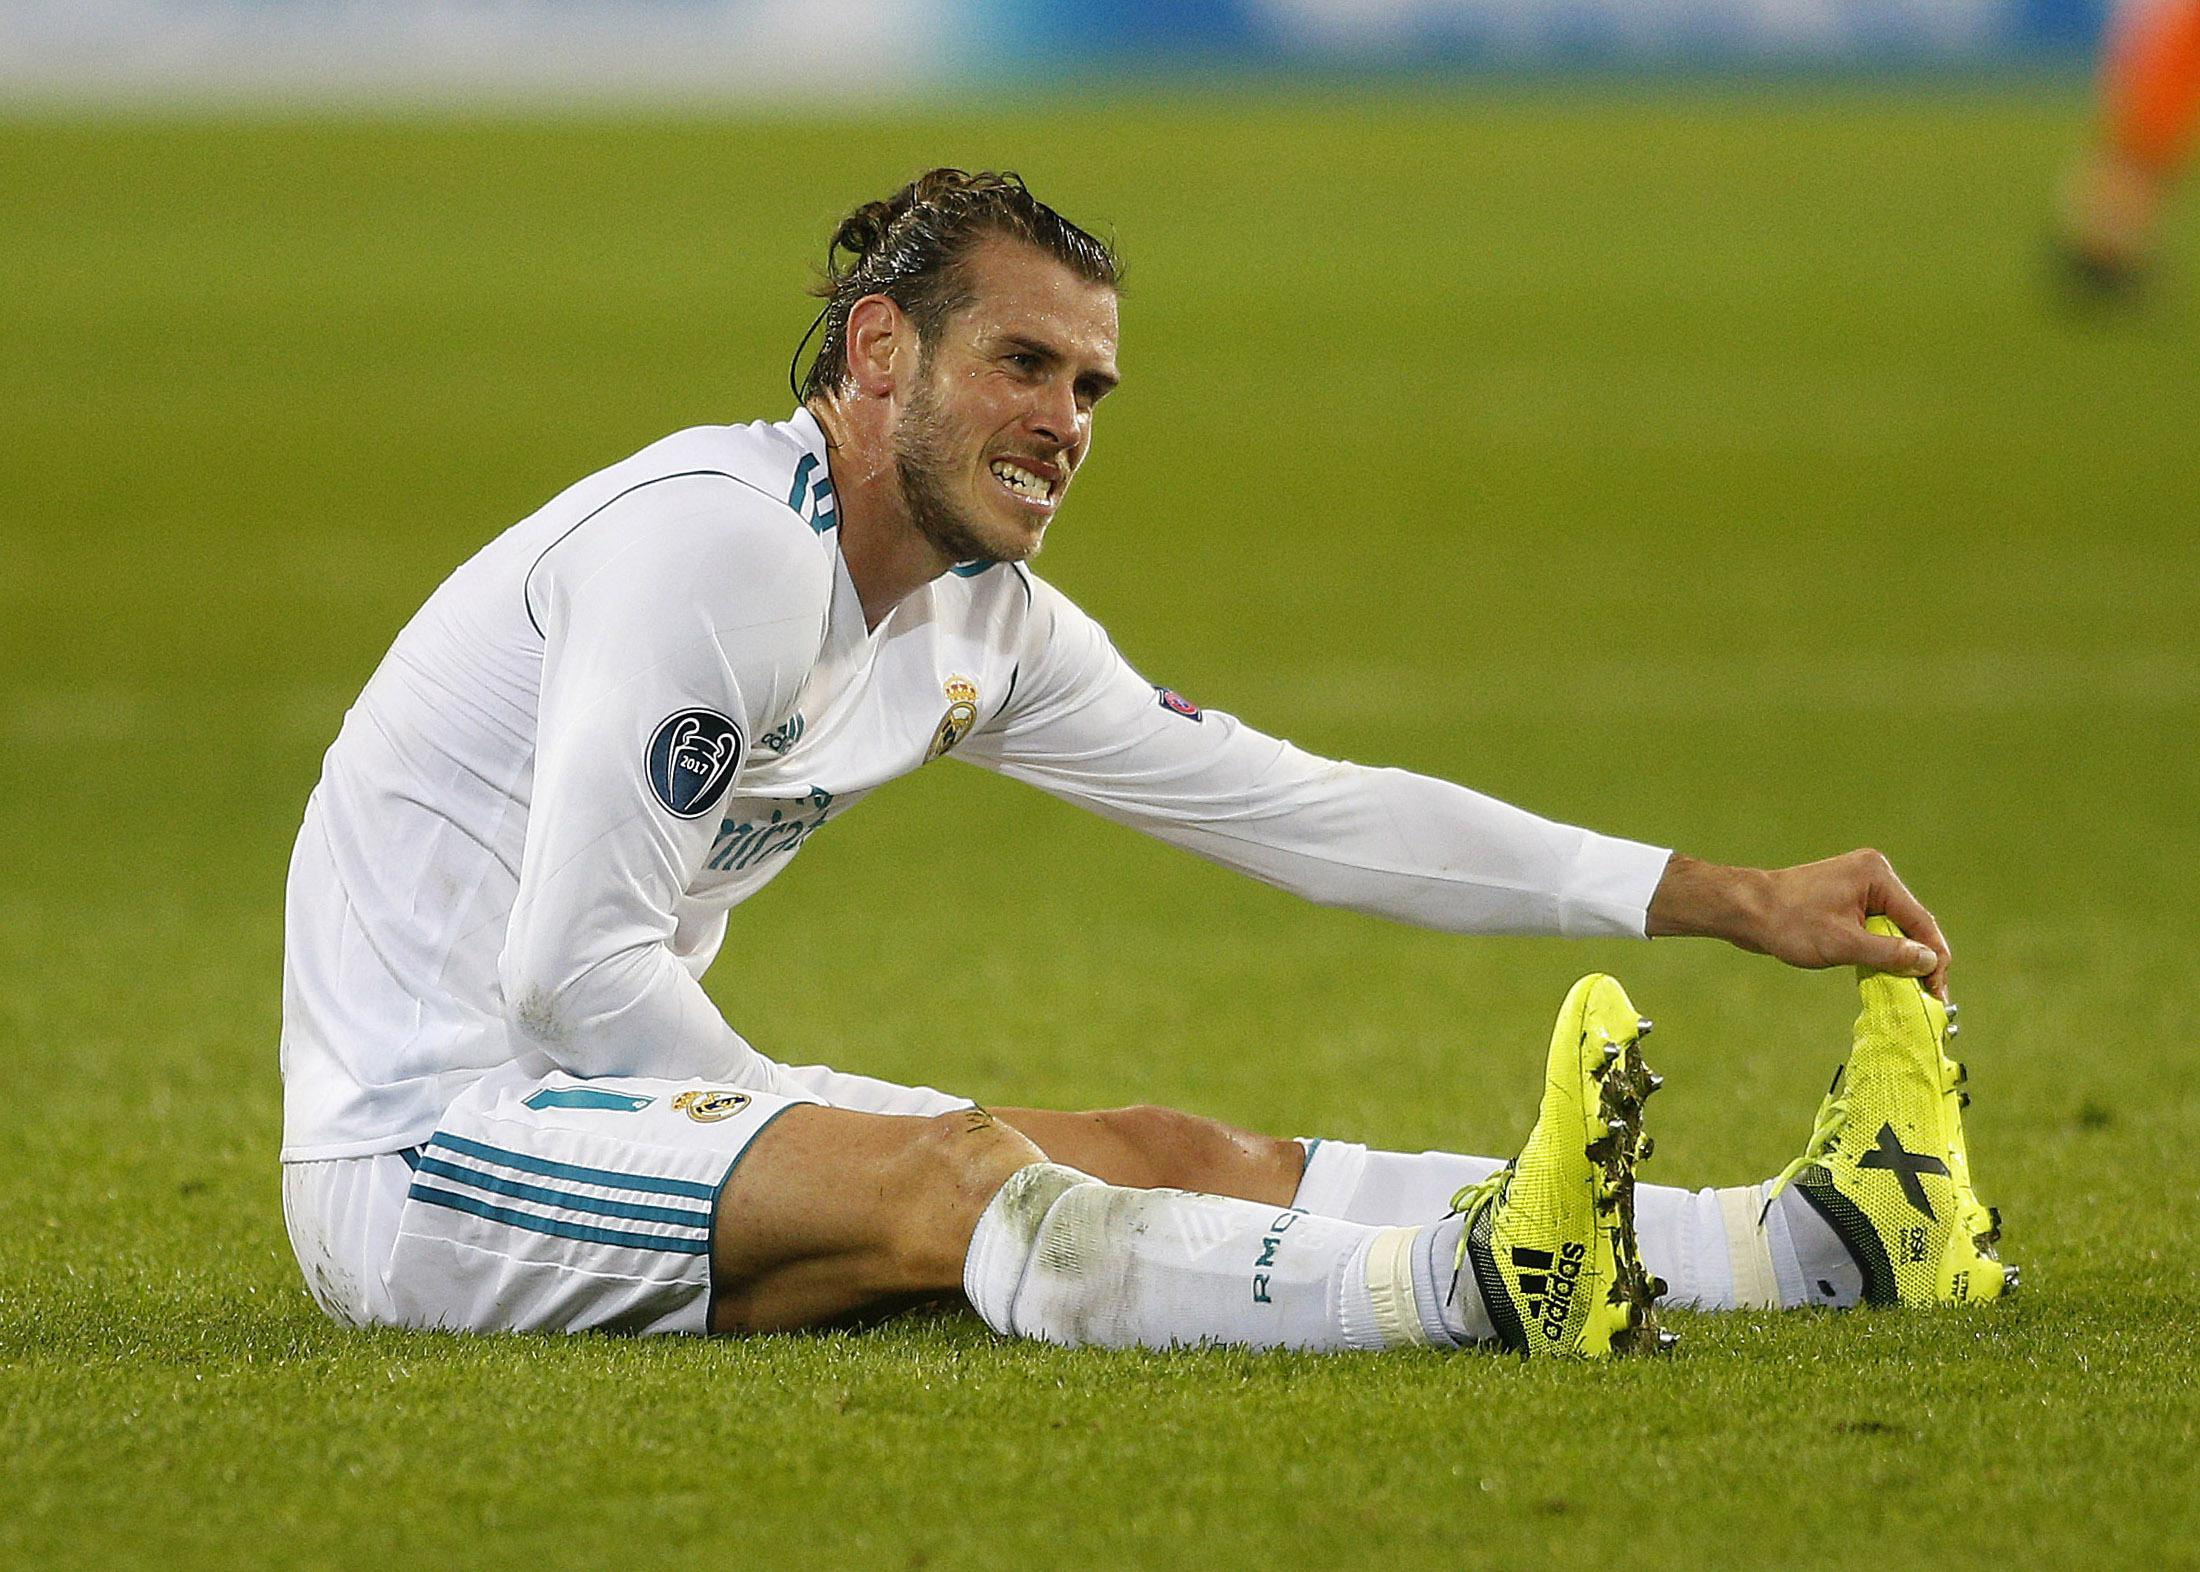 Gareth Bale's injury problems are becoming tiring